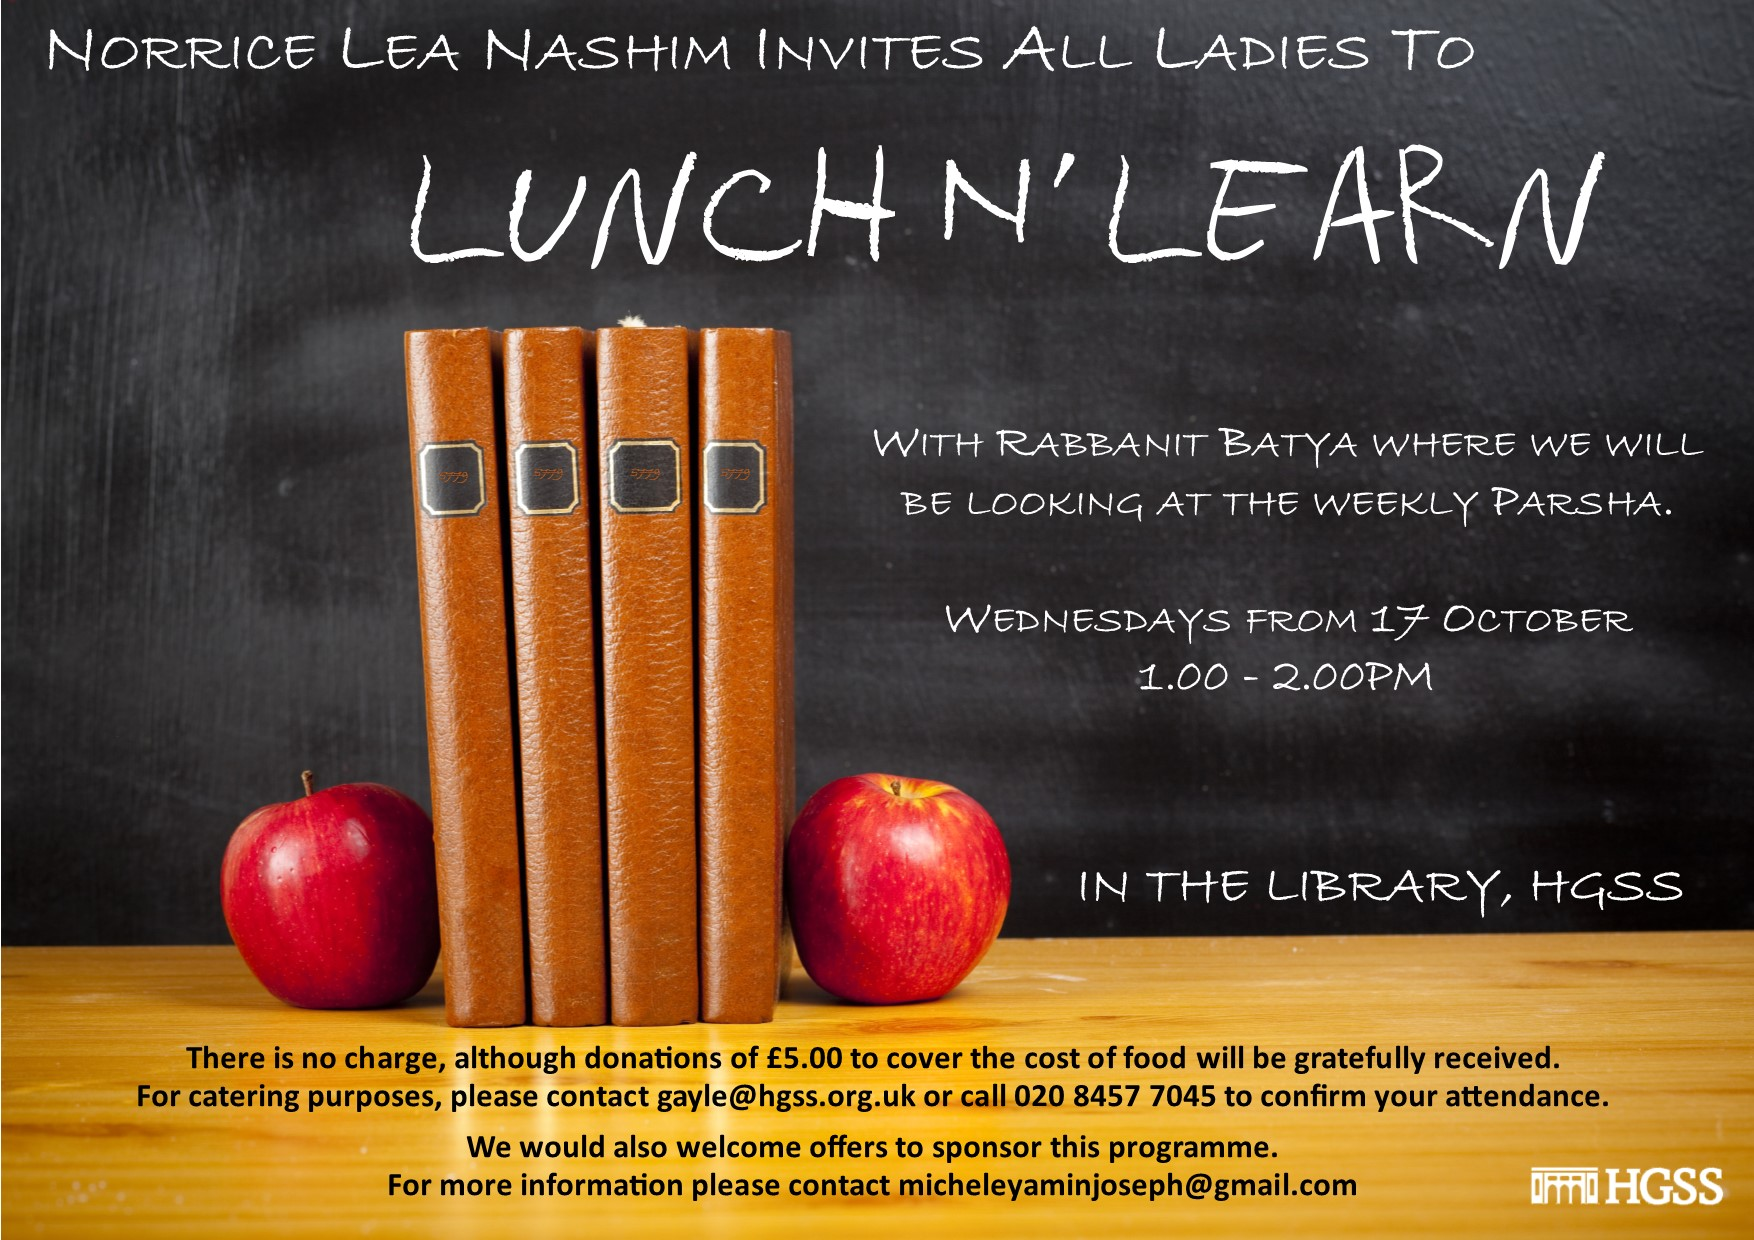 Ladies Lunch n Learn @ The Library, HGSS